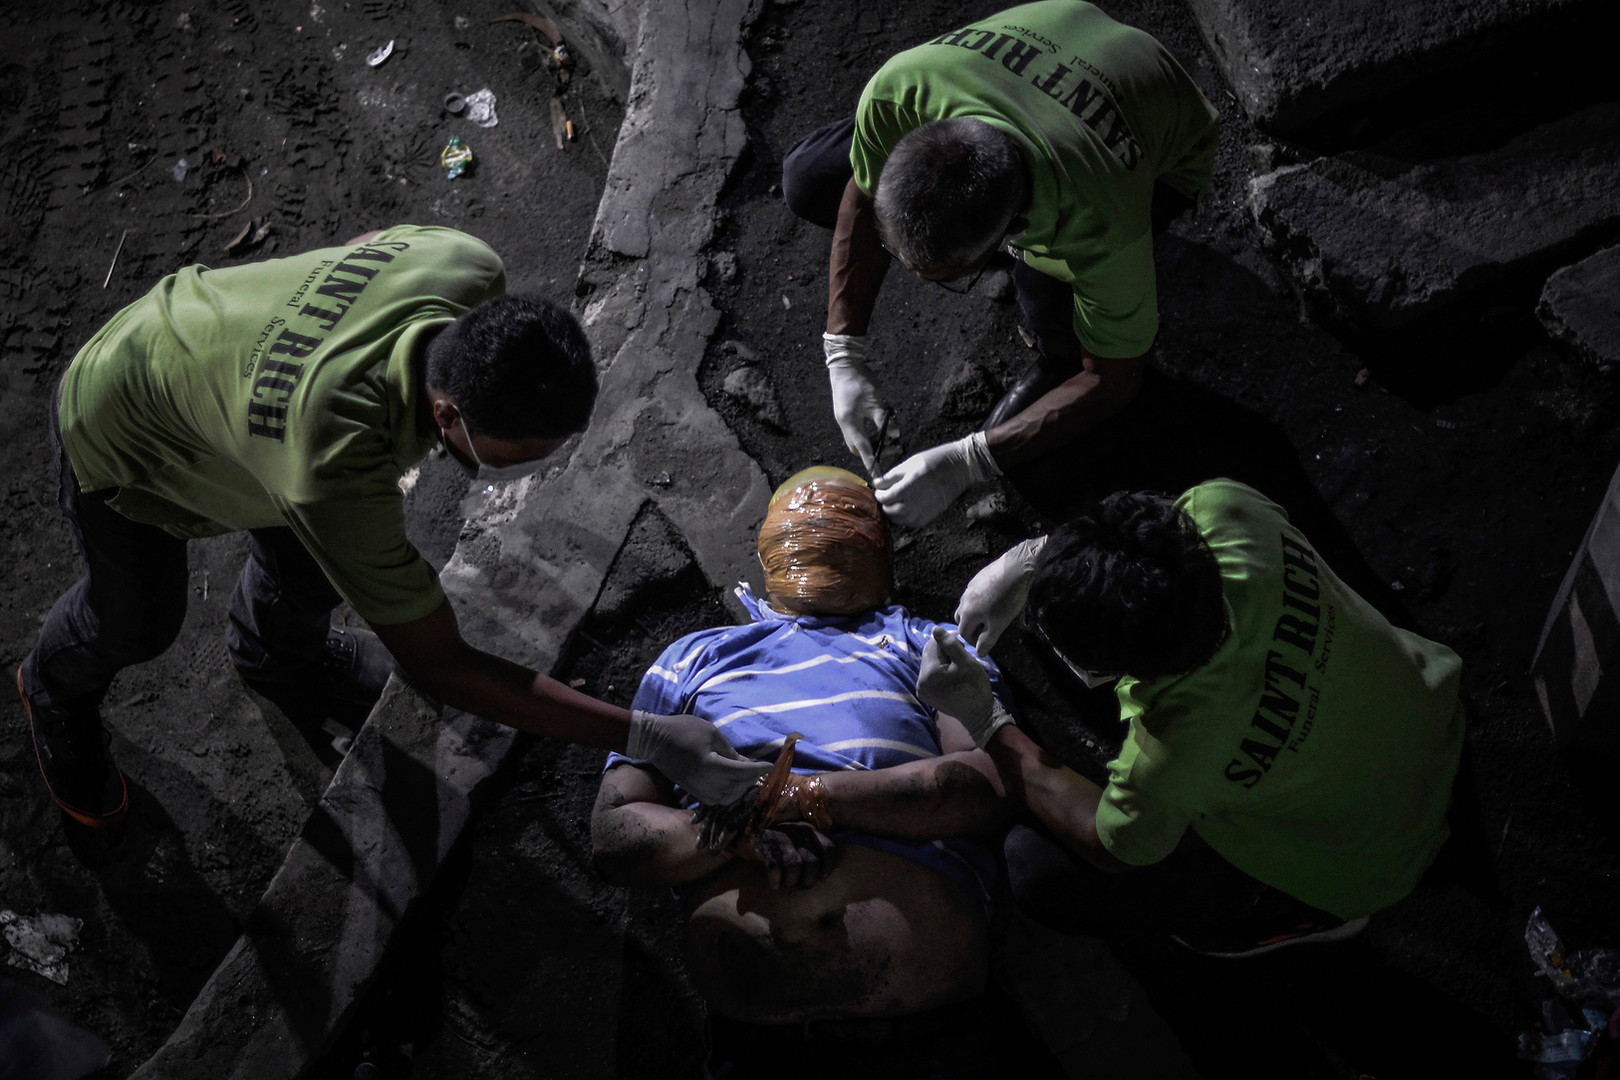 Funeral workers remove the tape wrapped around the head and wrists of a man who police say is a victim of a drug related vigilante execution in Manila, Philippines, September 21, 2016.